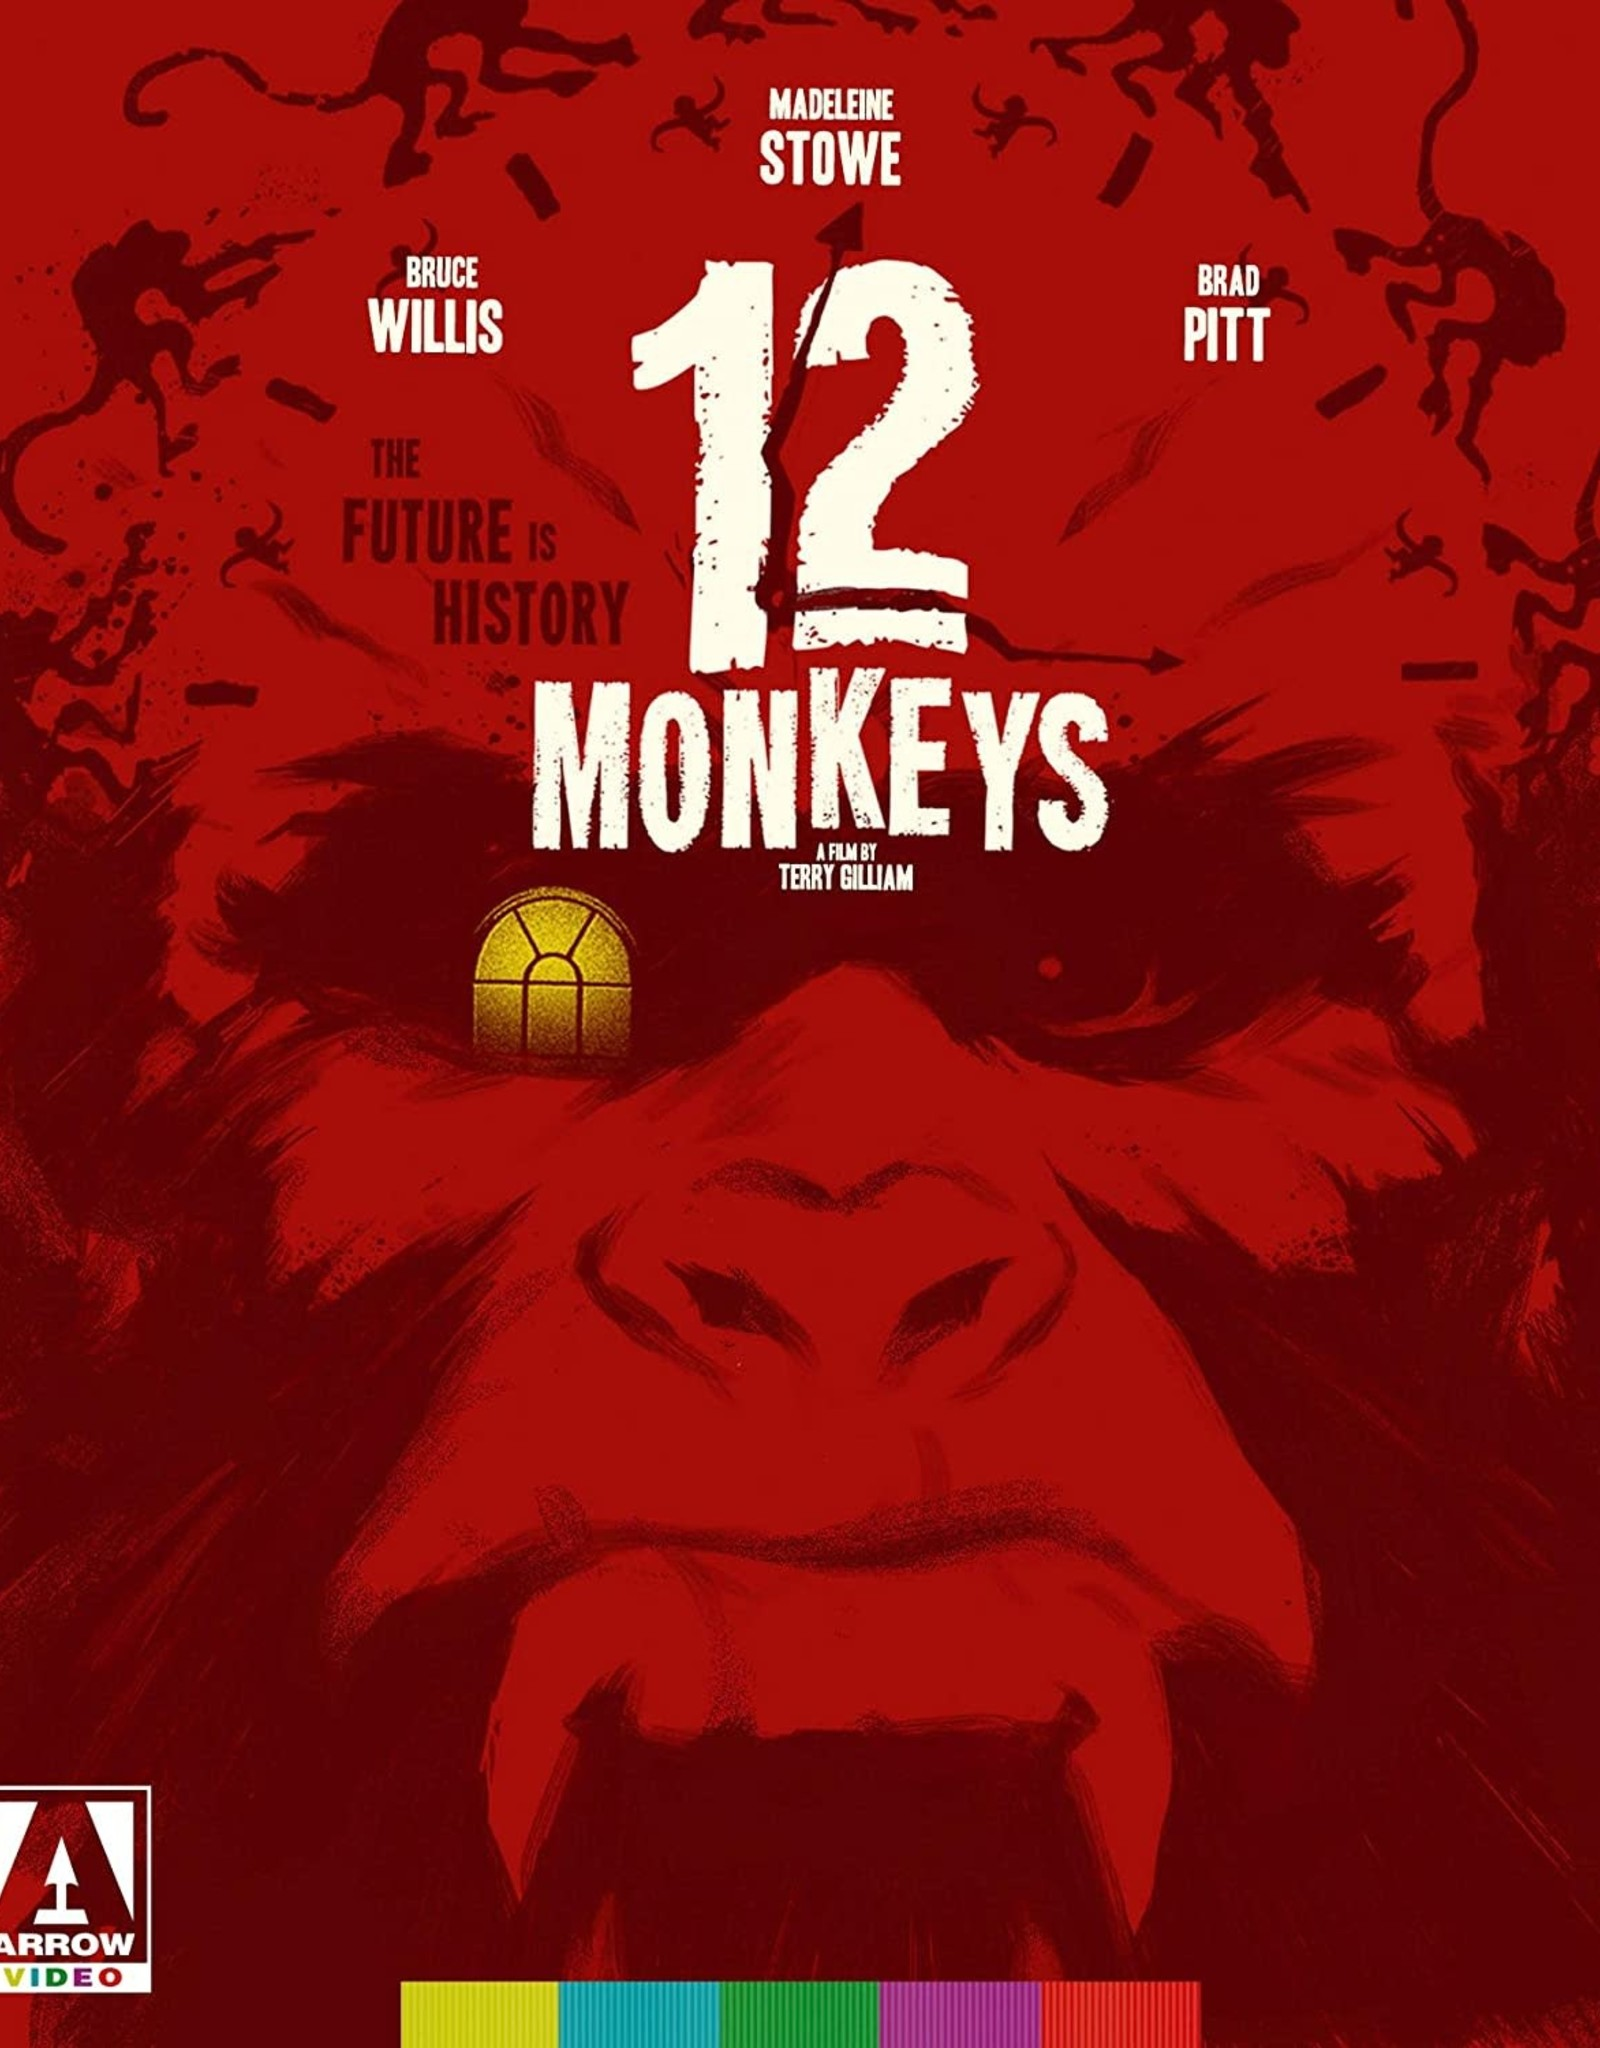 Horror Cult 12 Monkeys Arrow Video with Slipcover (USED)